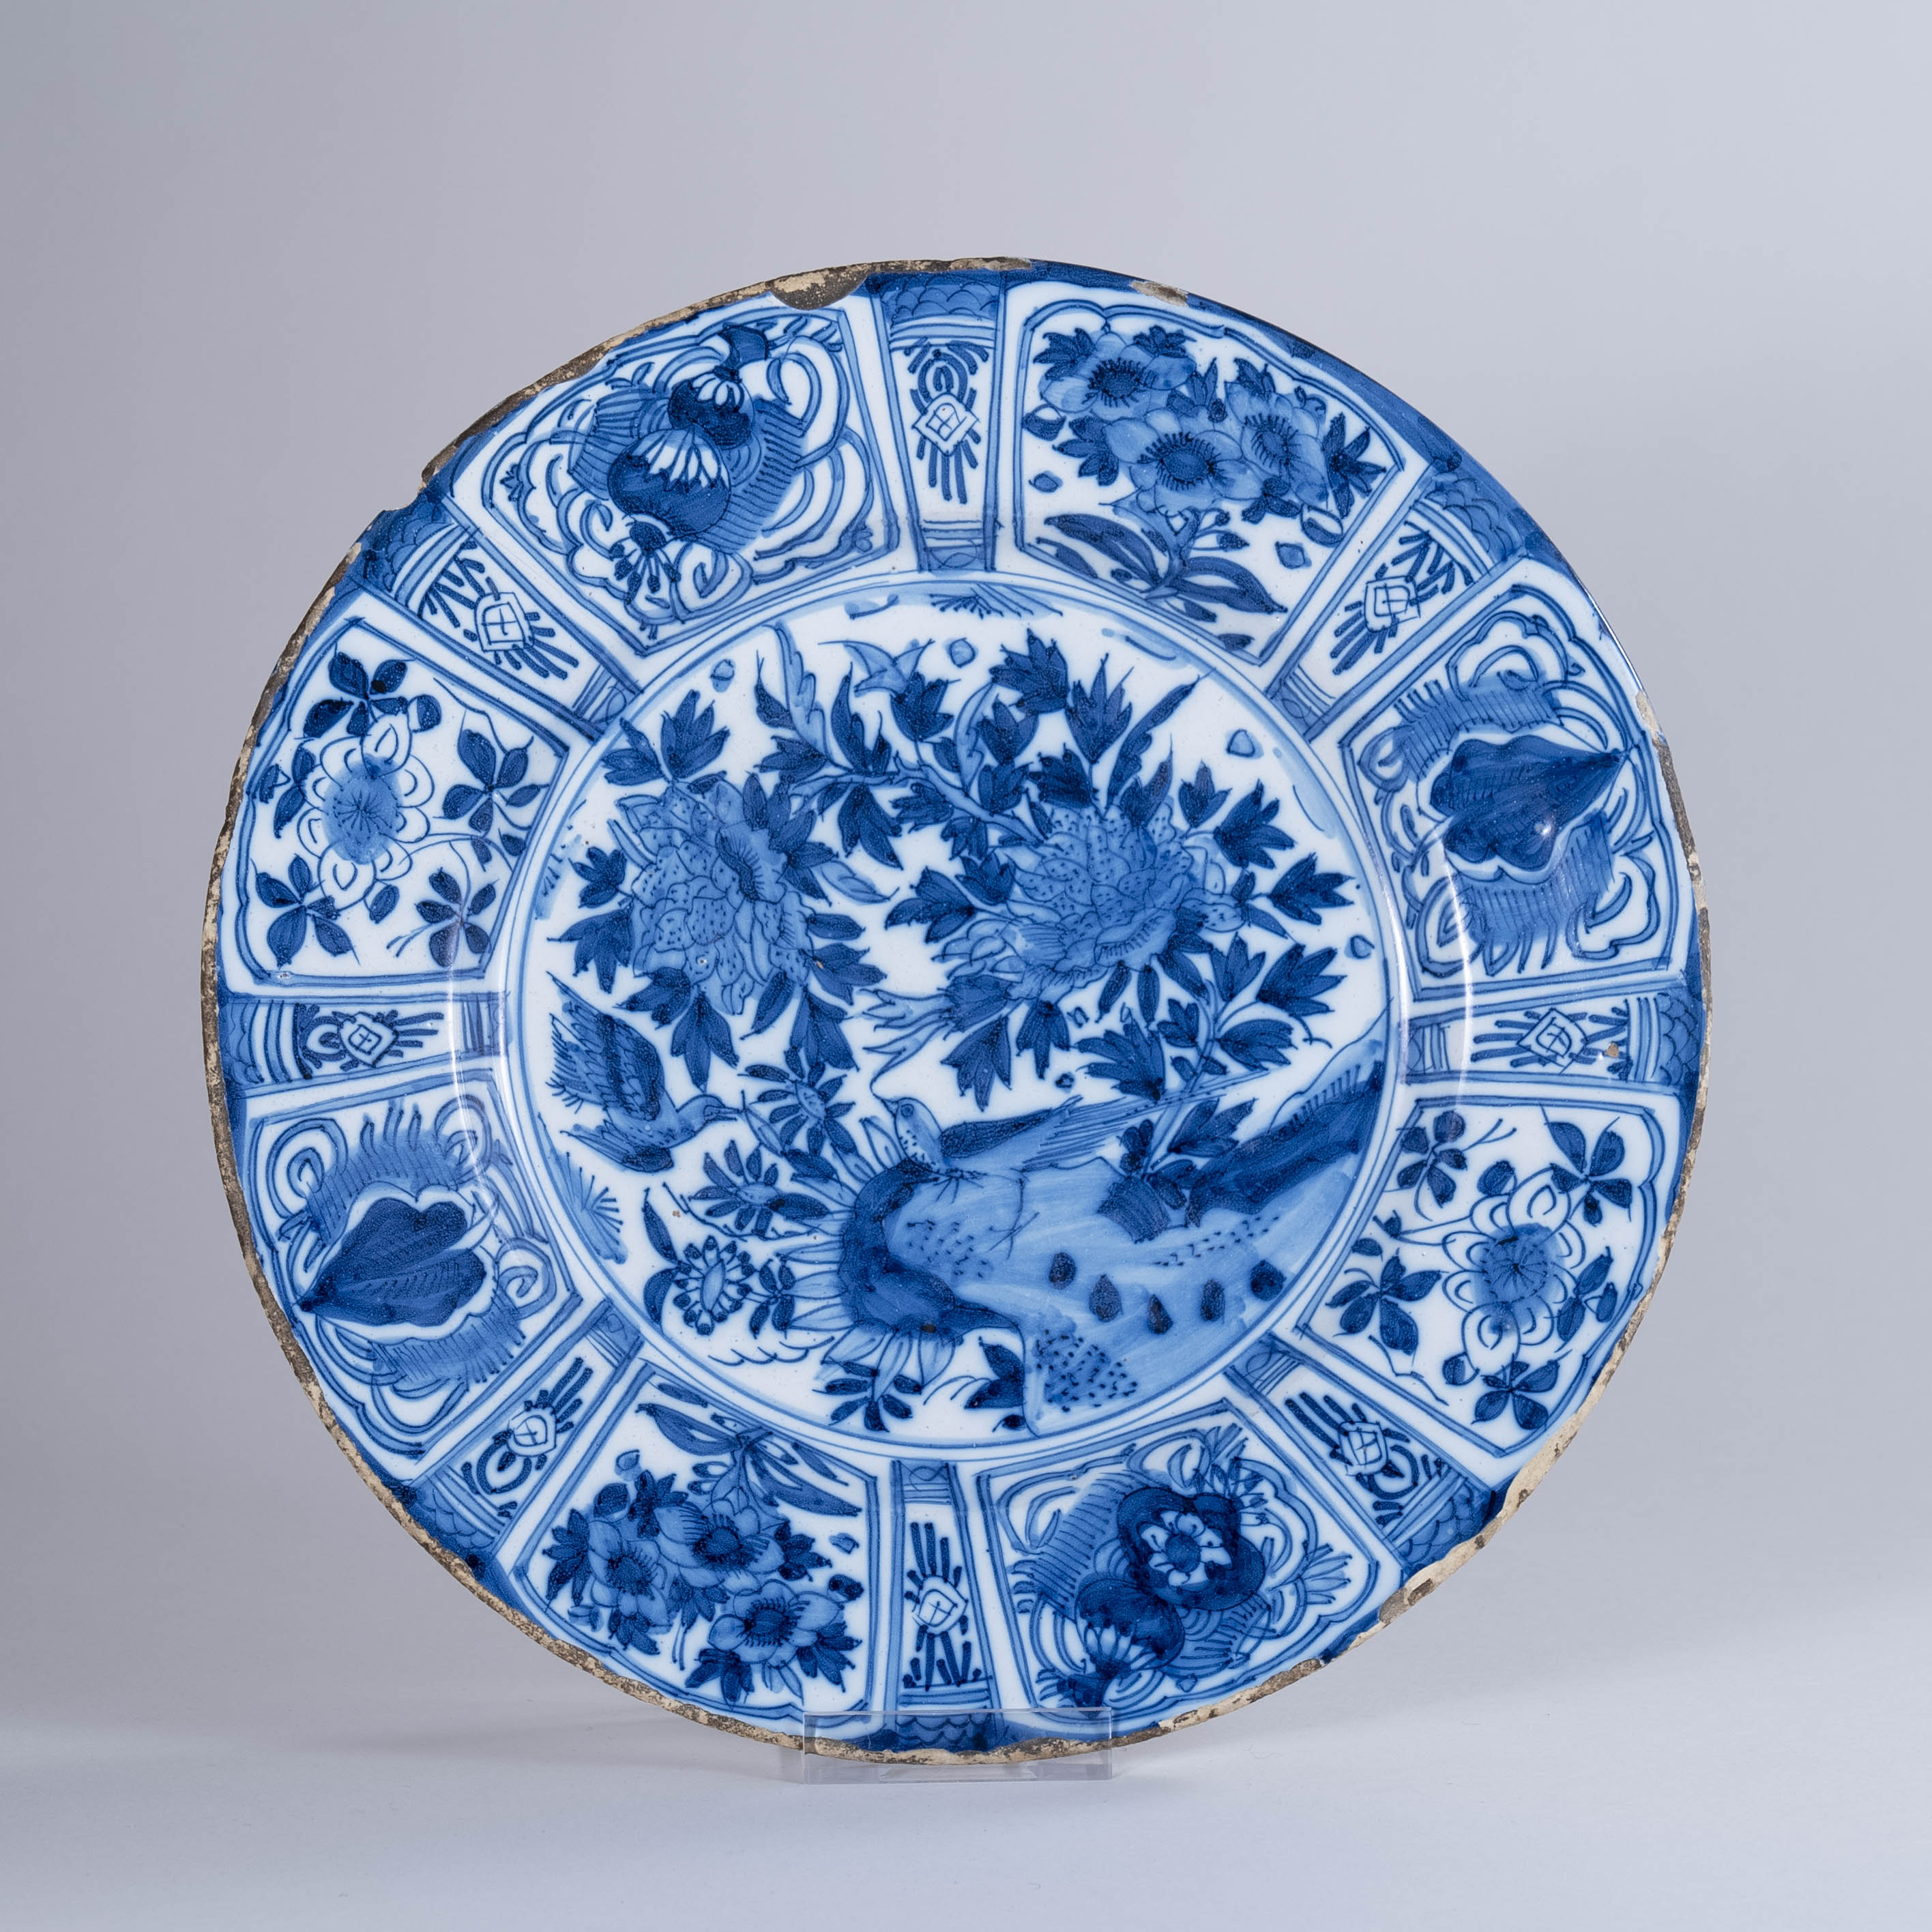 Large early 18th century Dutch Delft Charger in Kraak-Wanli Style